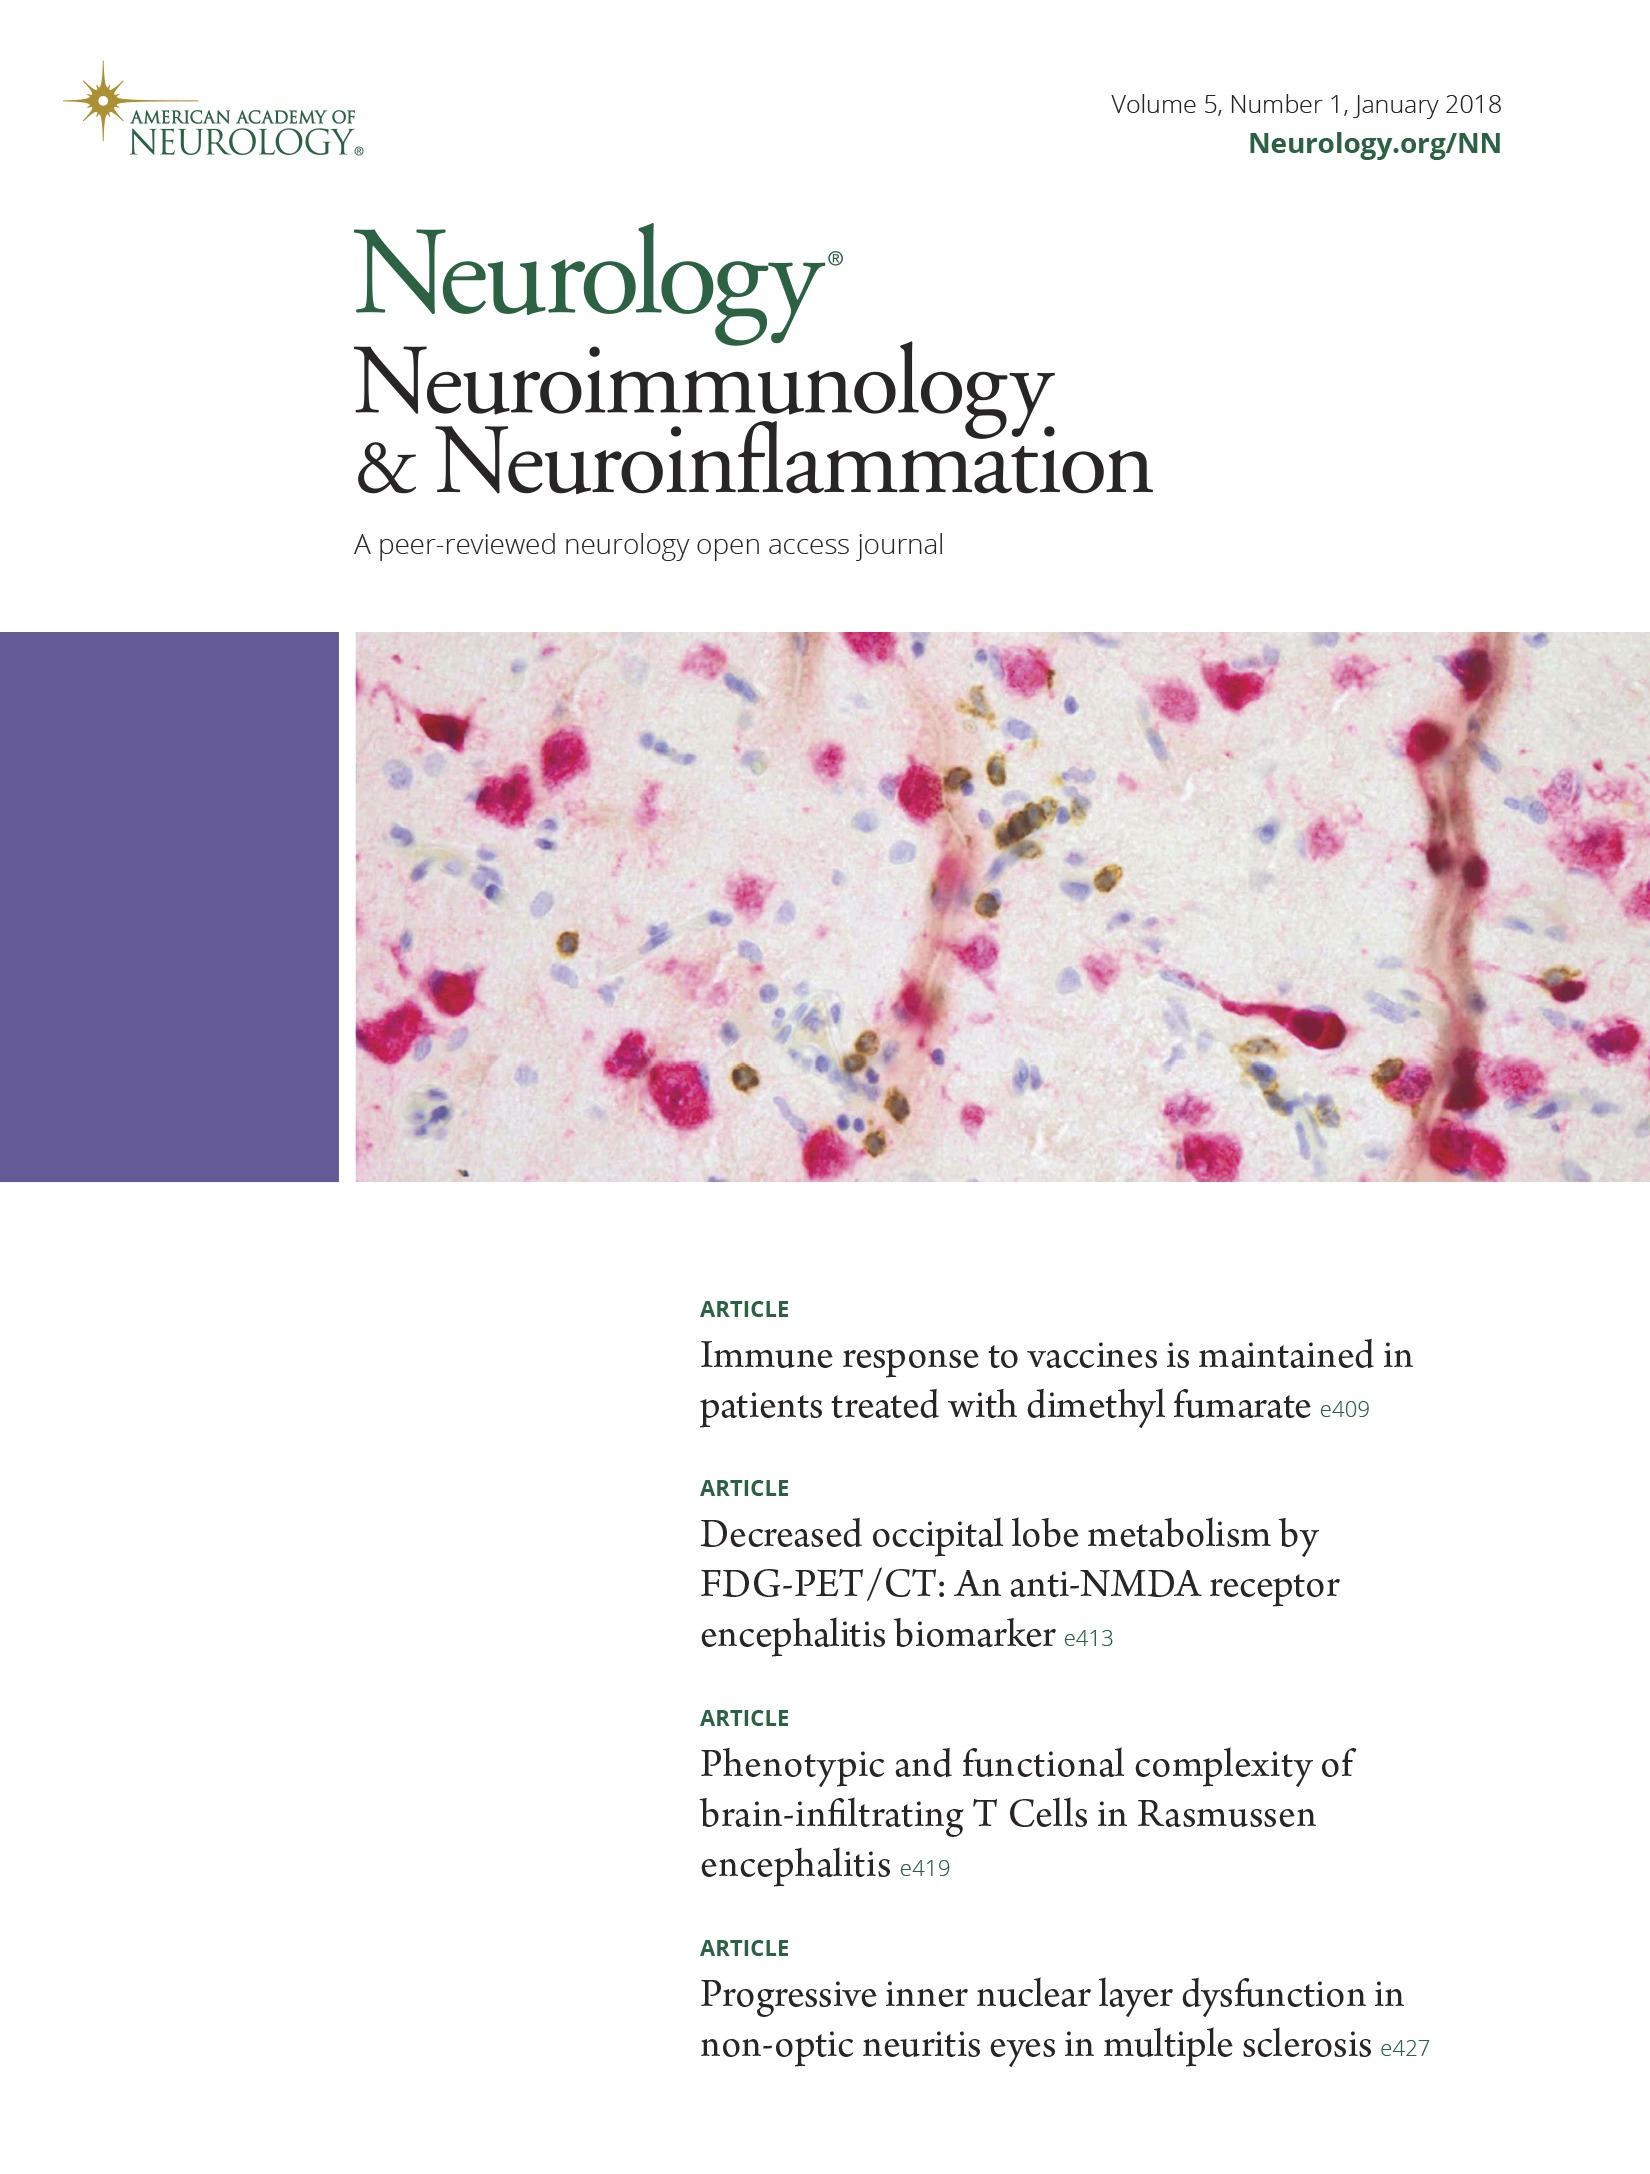 Safety and preliminary efficacy of deep transcranial magnetic